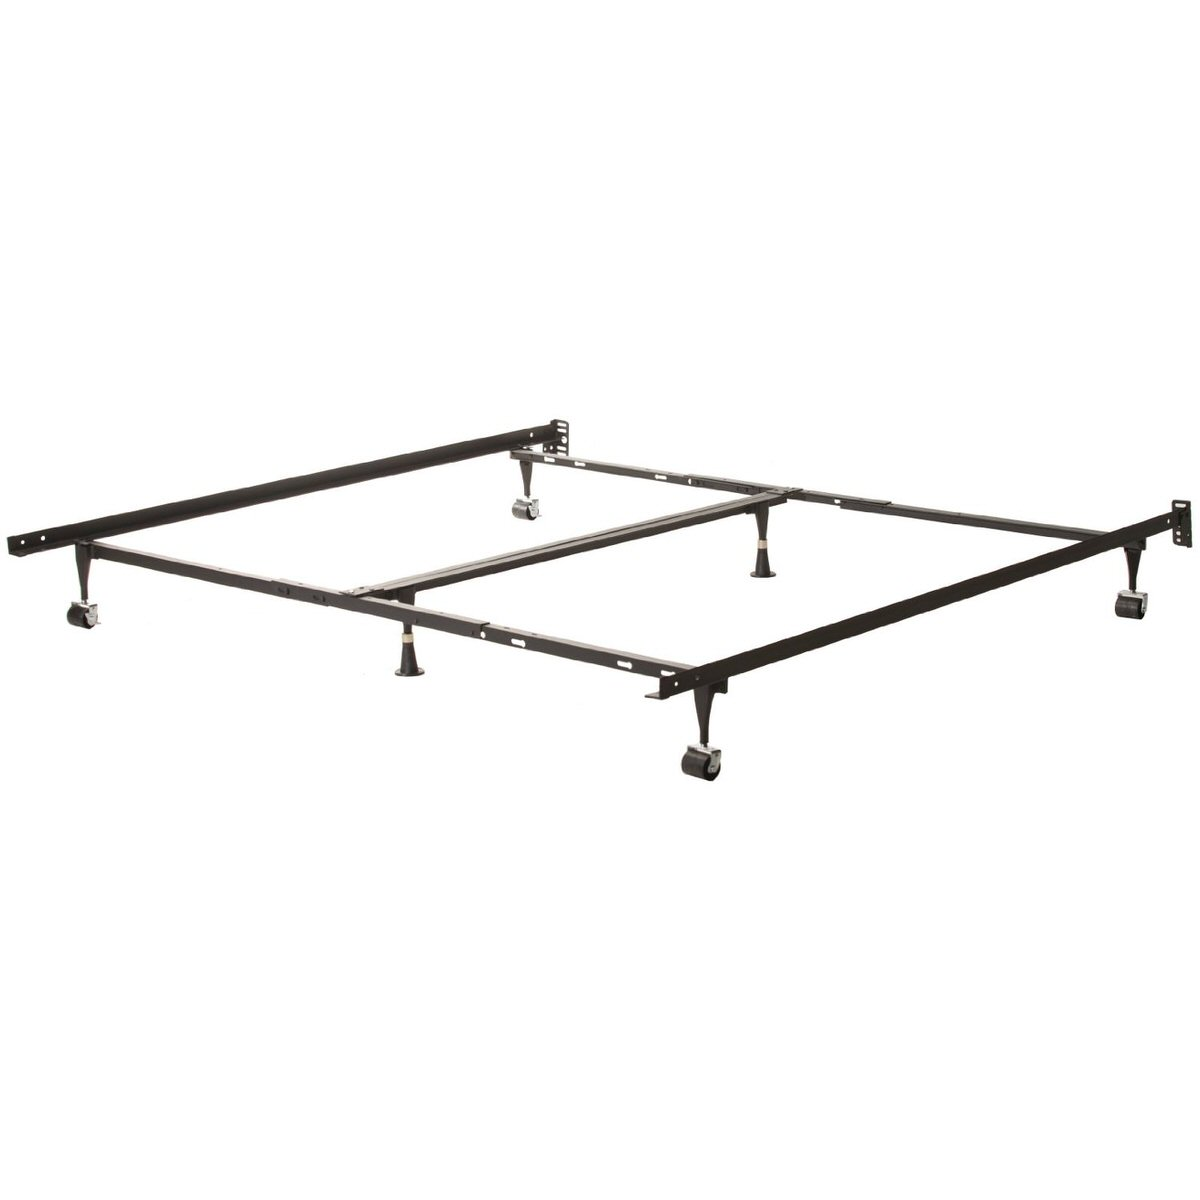 Universal adjustable metal bed frame twin full queen Metal bed frame twin